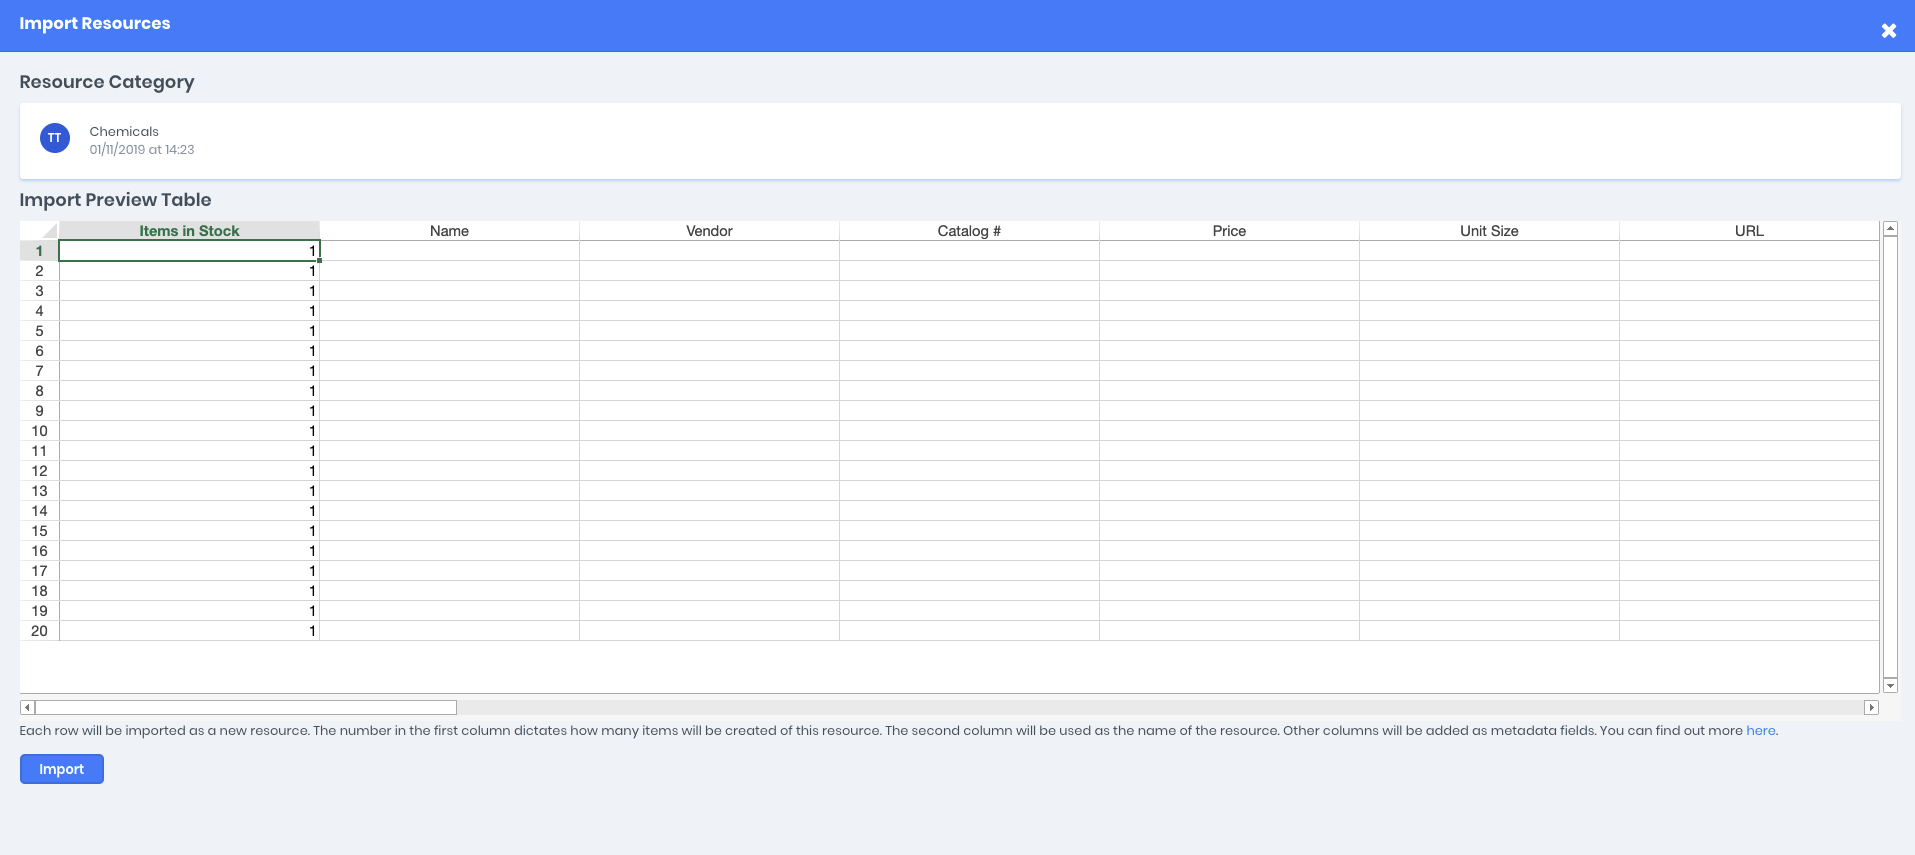 Resource category import preview data allowing for metadata values to be implemented and imported